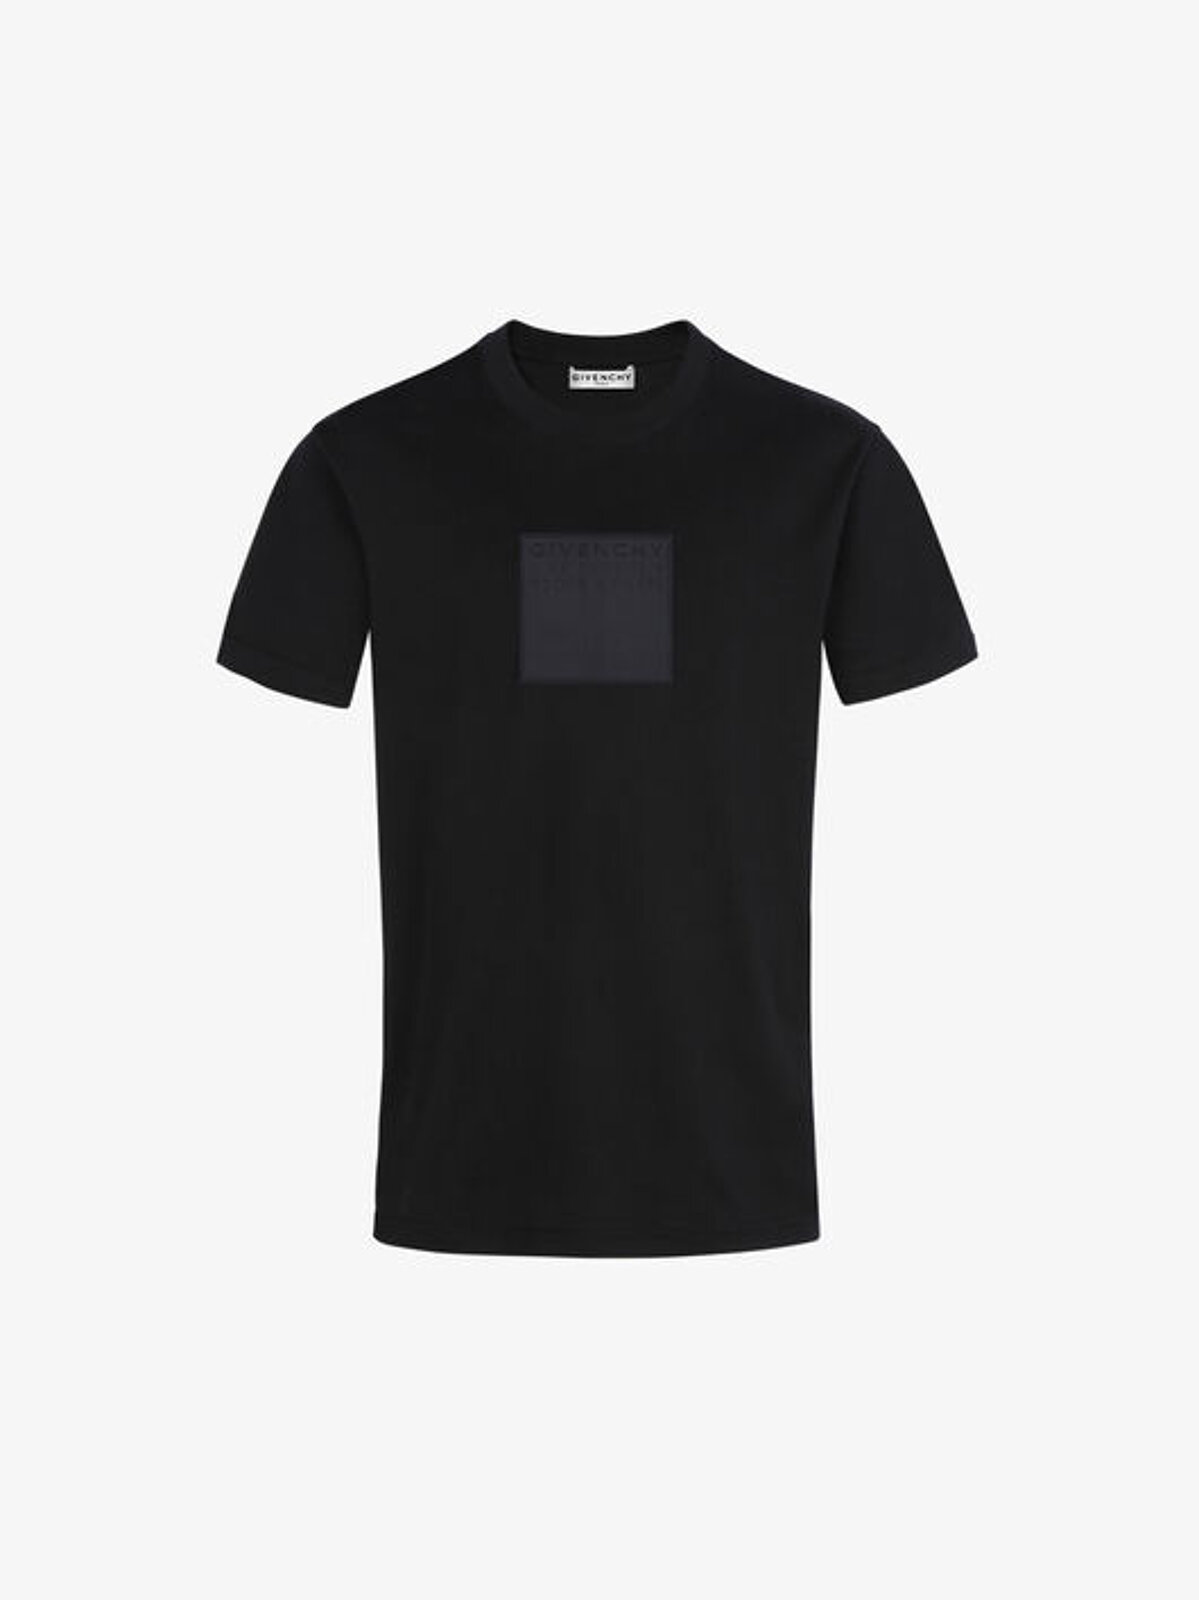 ADRESSE GIVENCHY slim fit t-shirt - Givenchy